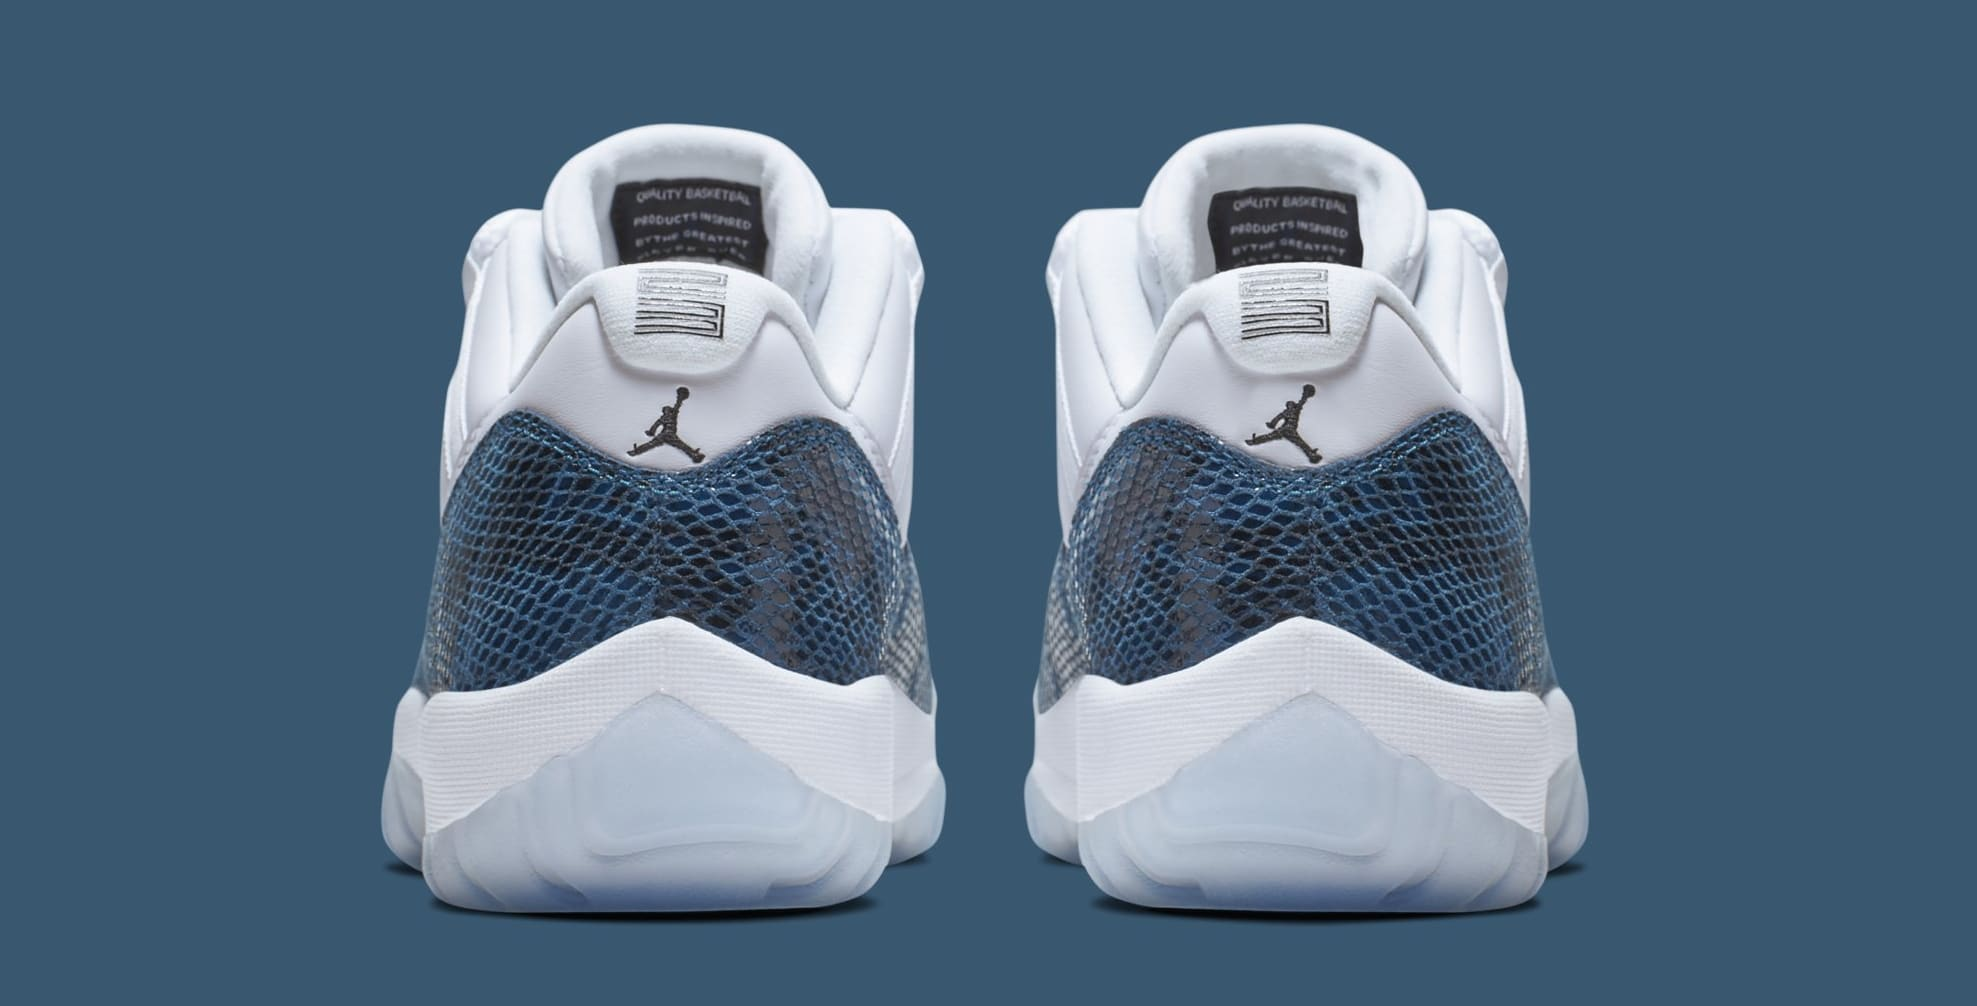 66d5261fef7e34 Image via Nike Air Jordan 11 Low  Blue Snakeskin  CD6846-102 (Heel)